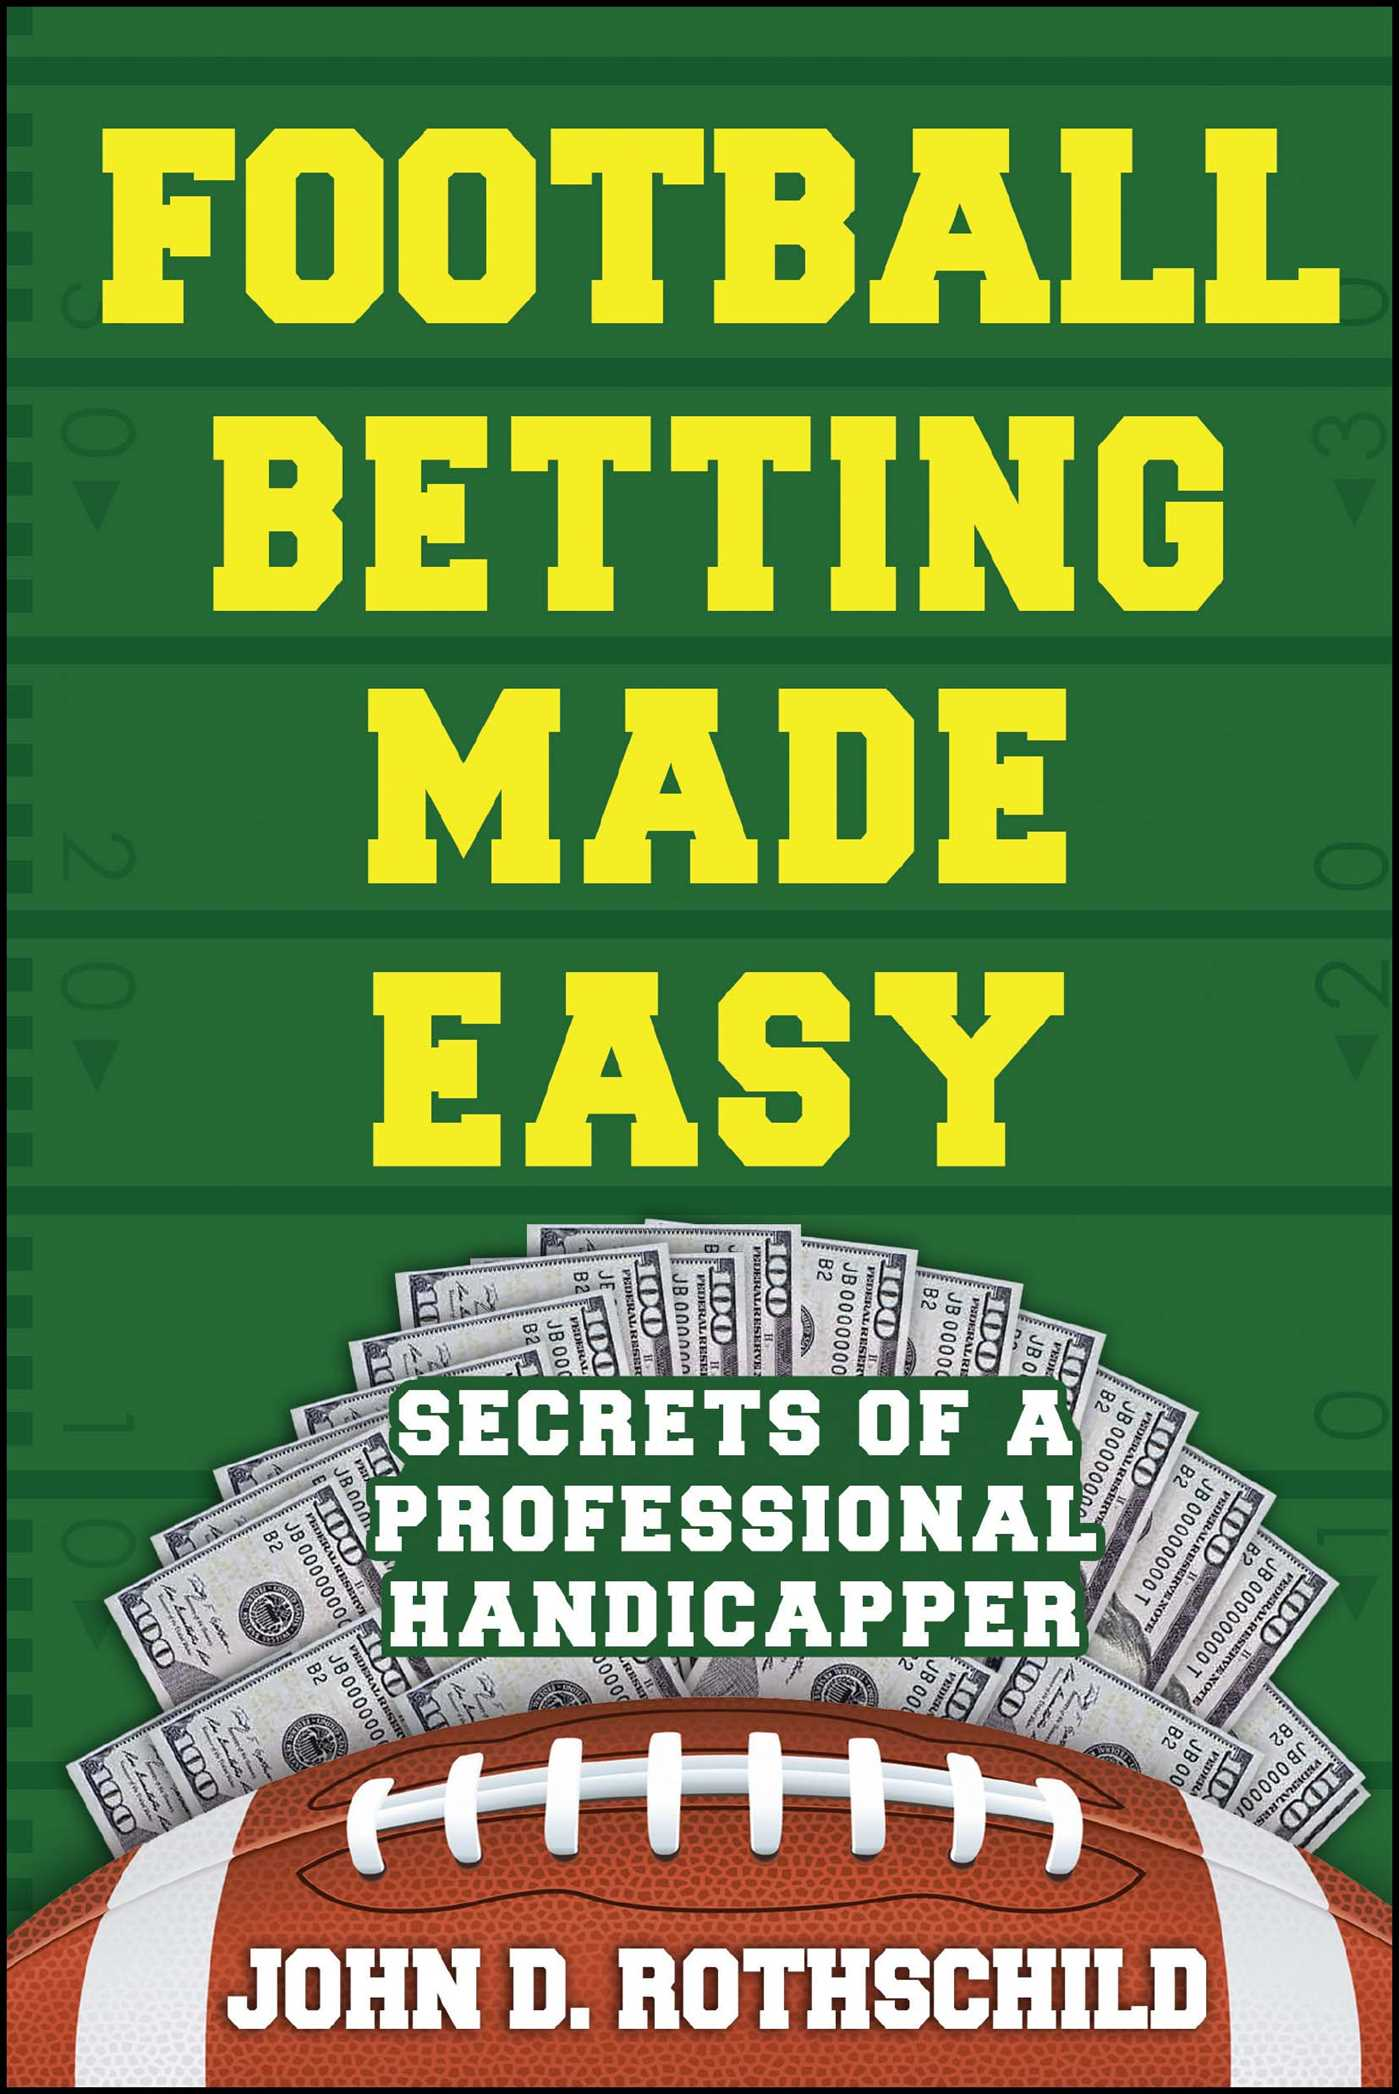 Football betting made easy 9781682614440 hr